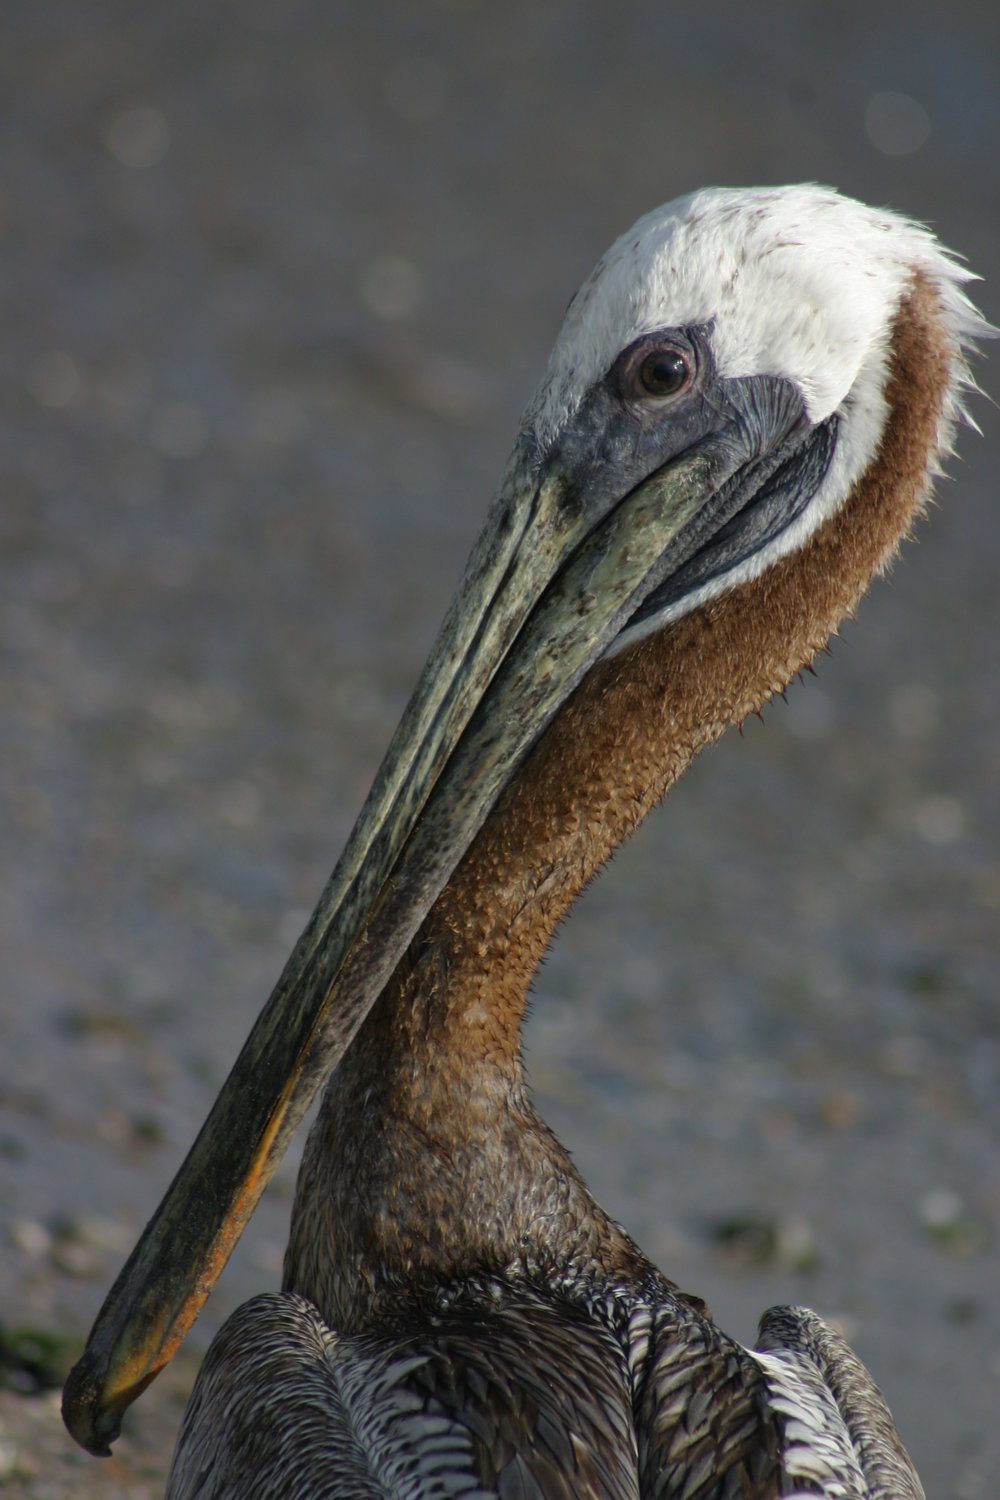 - The brown pelican